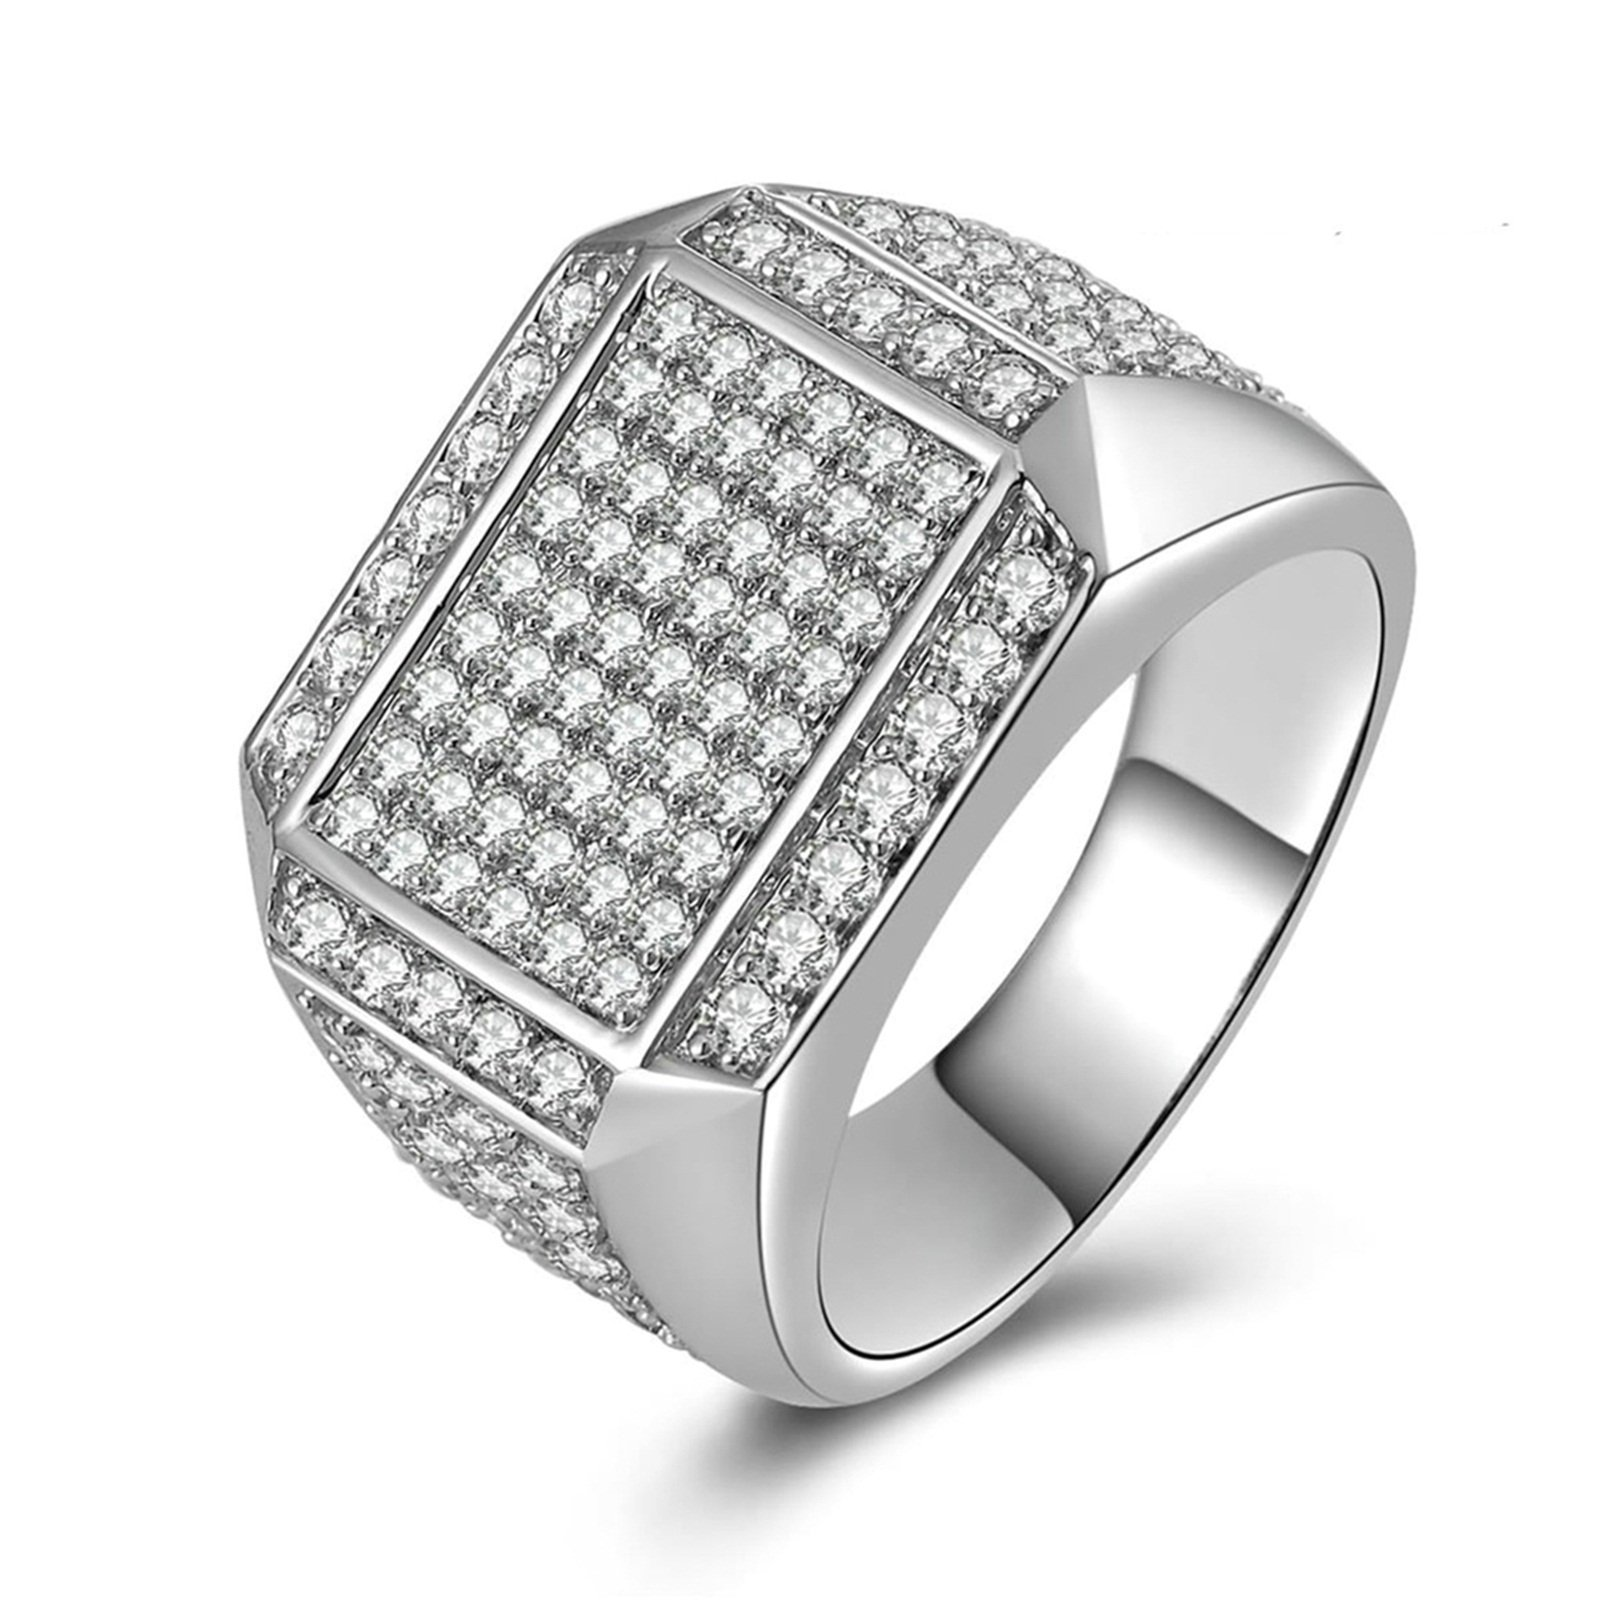 Beydodo Wedding Band Diamond Iced Out Ring Round White Cubic Zirconia Size 12 Anniversary Gift